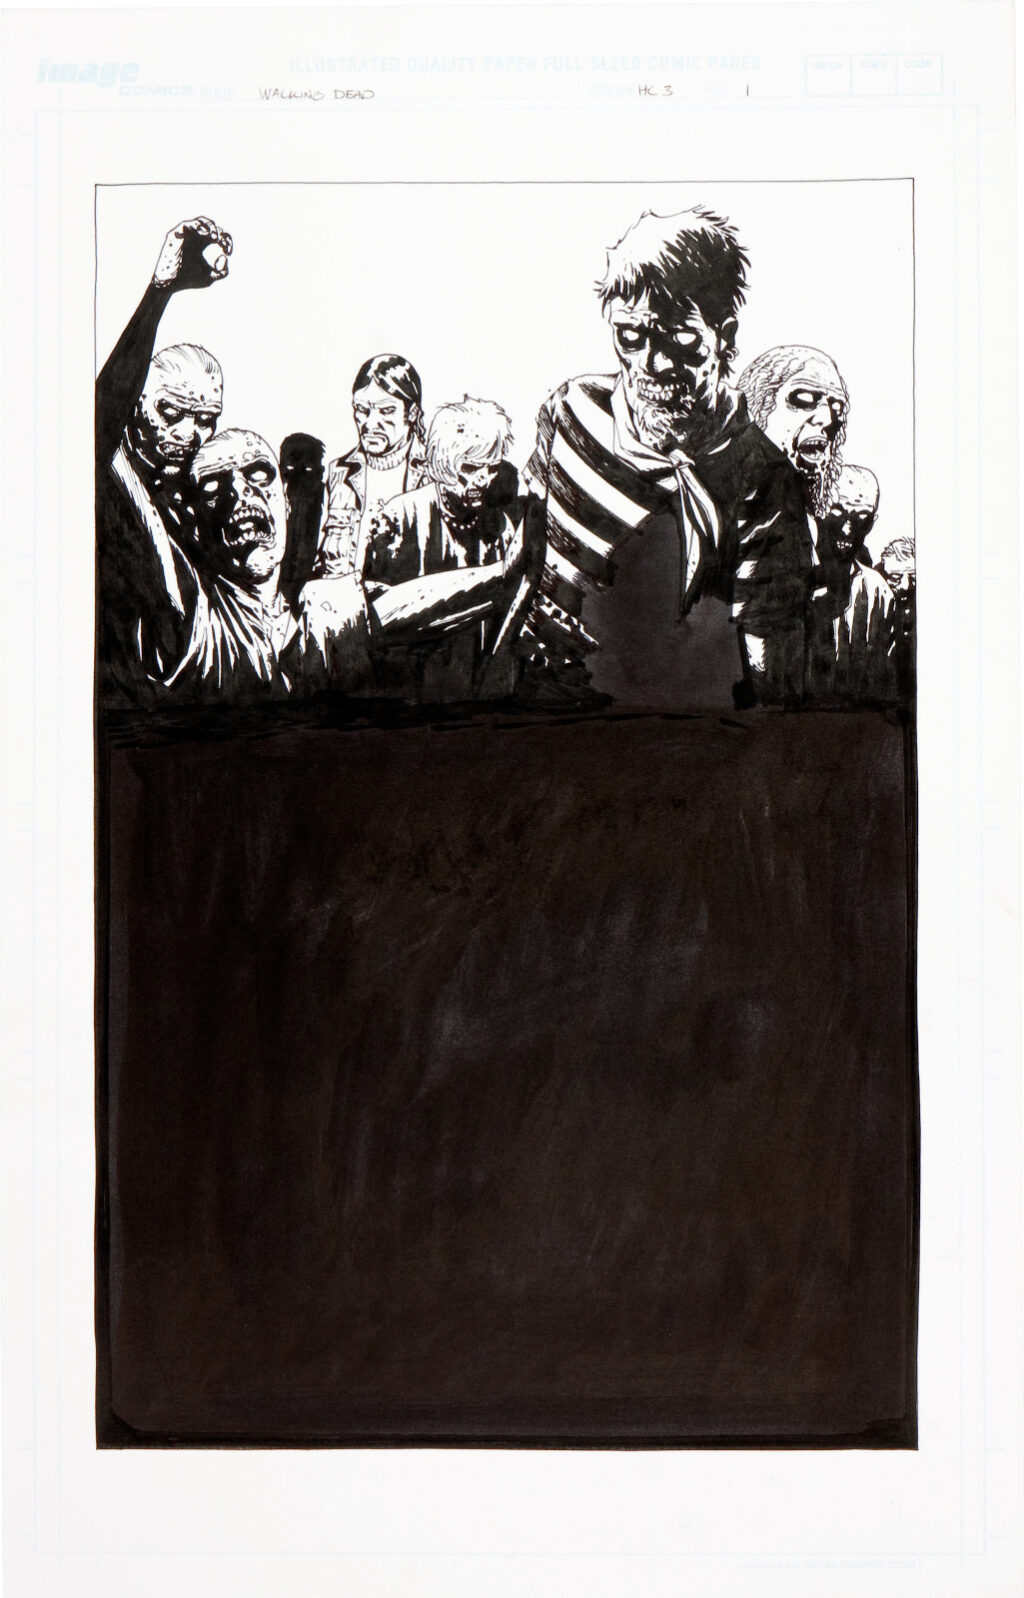 The Walking Dead Book 3 cover by Charlie Adlard